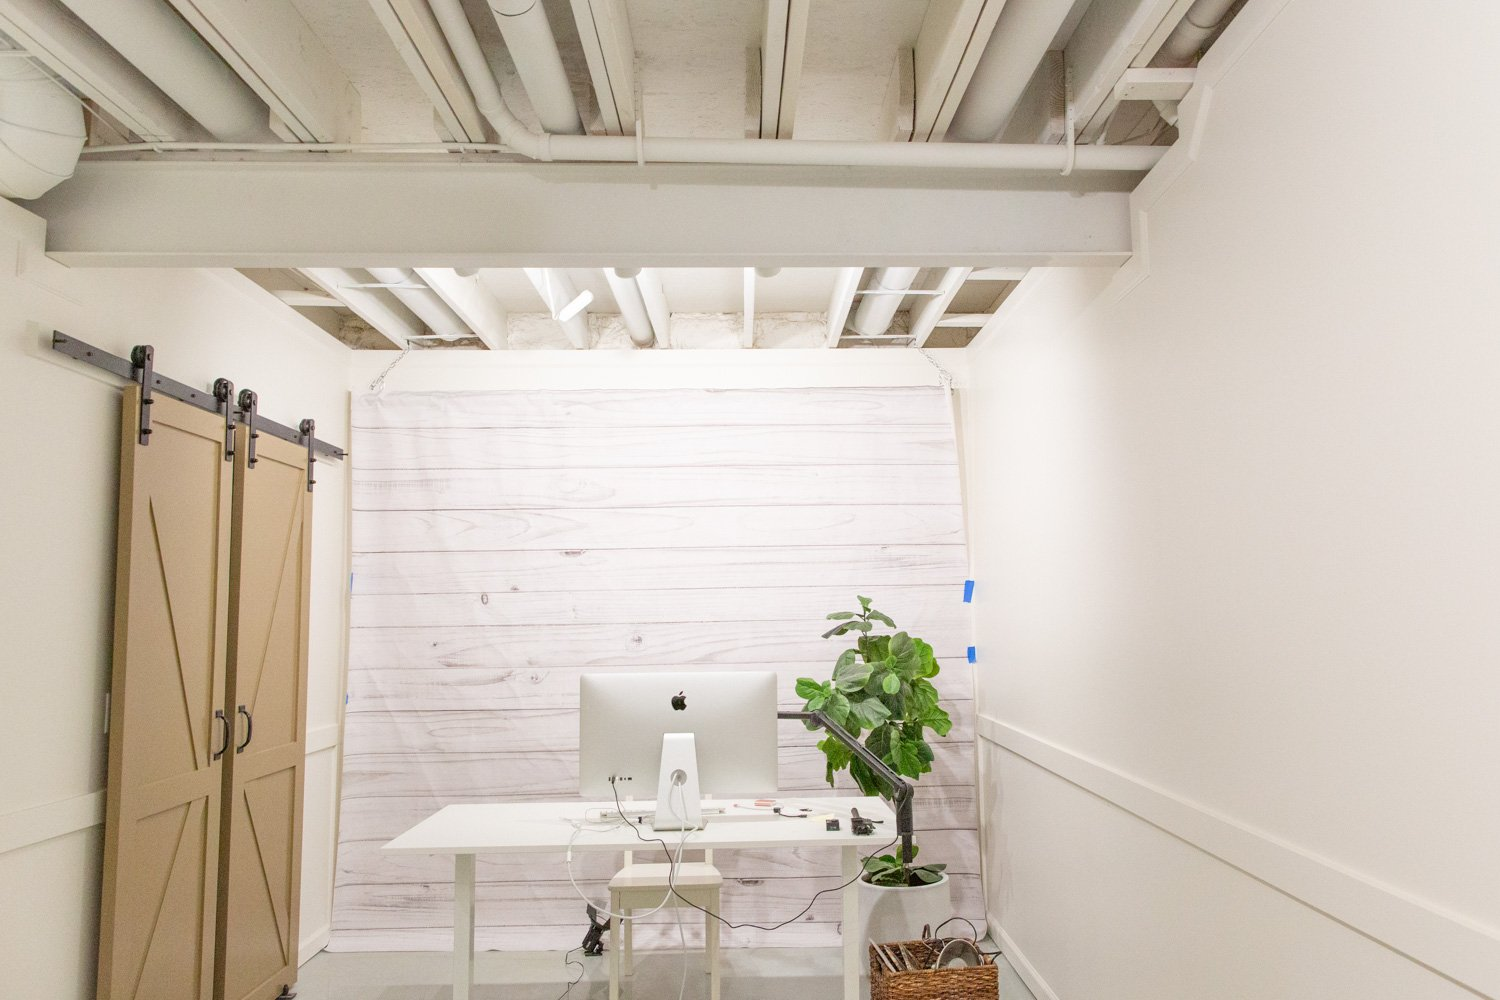 5 Considerations for an Exposed a Basement Ceiling and What Colors to Paint It